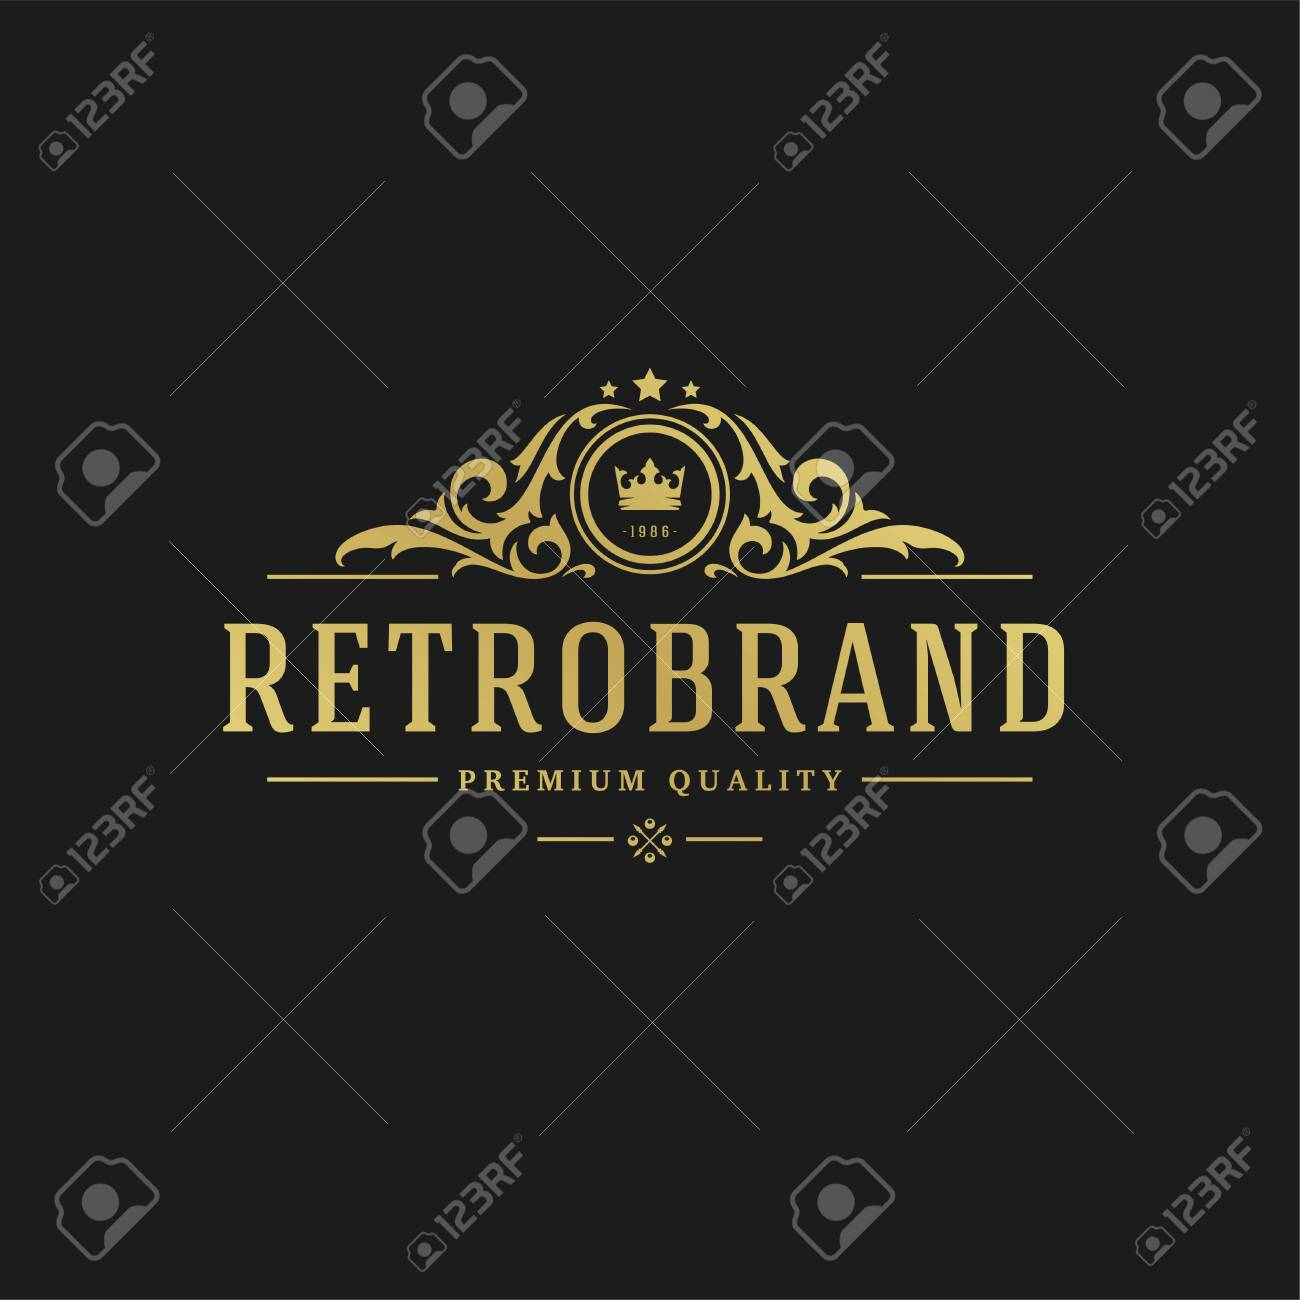 Luxury design template Victorian vignettes royal ornament shapes for logotype or badge design. - 125831333